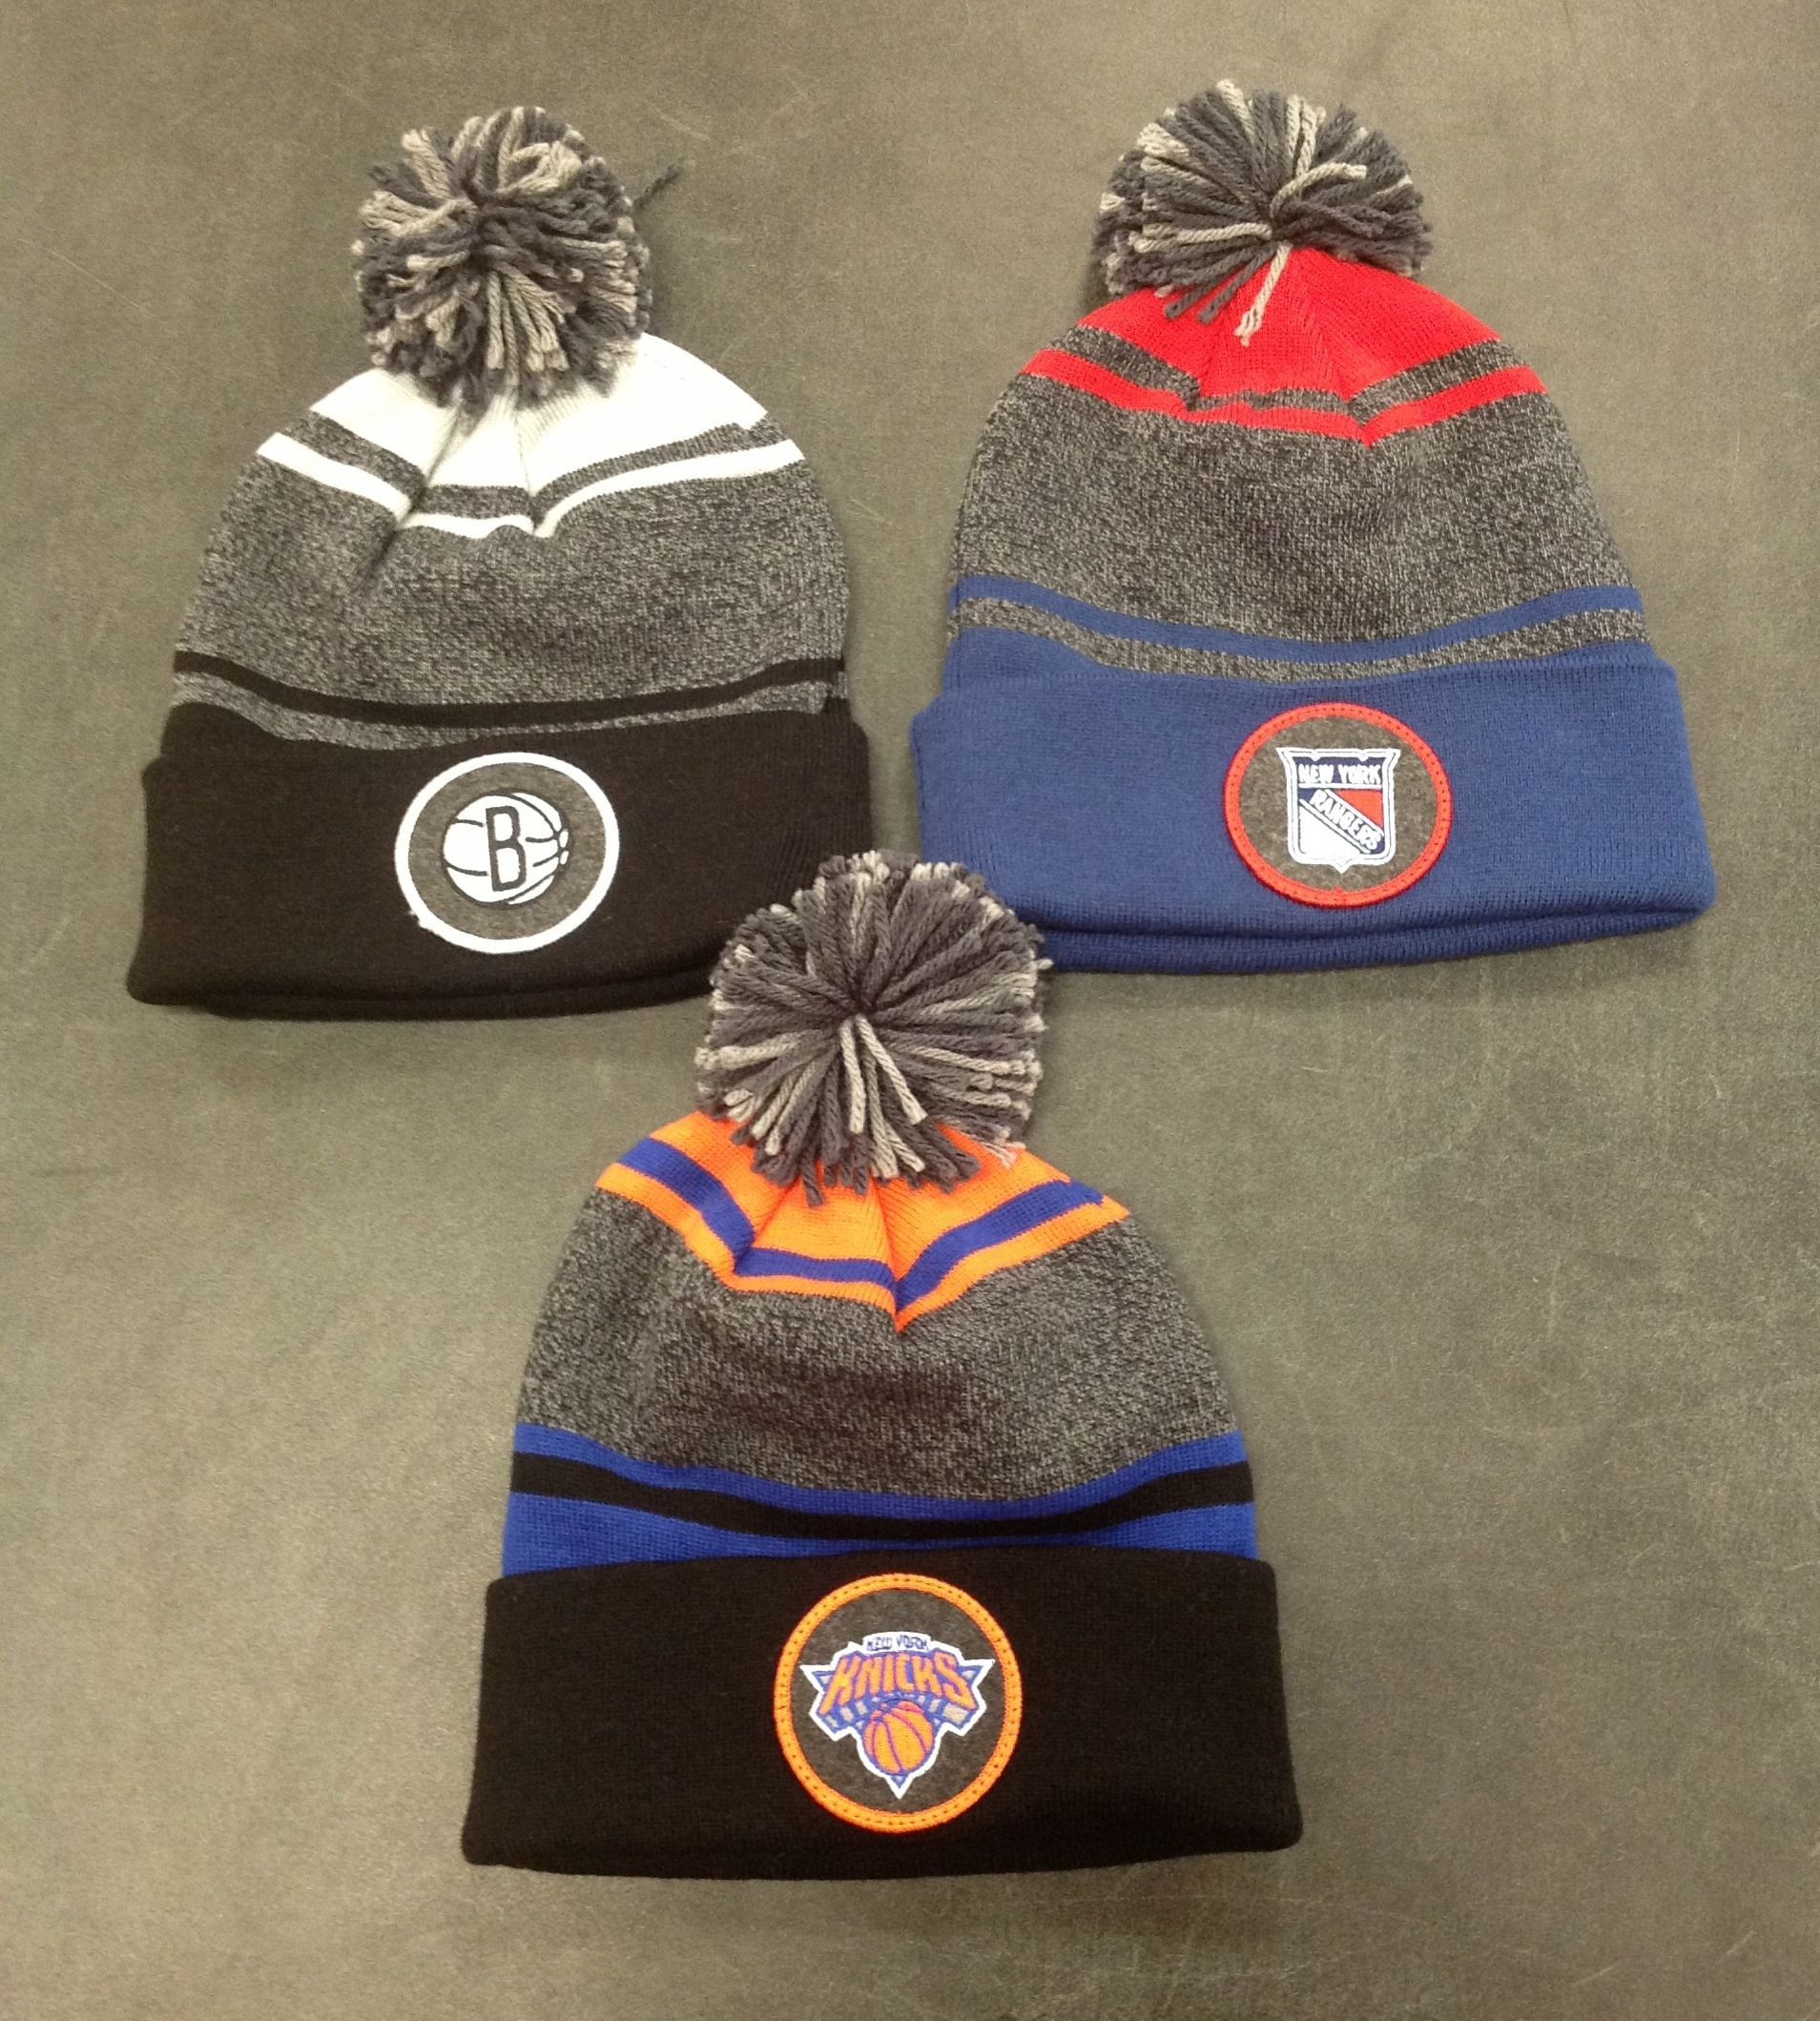 PomPom Skully's Michell & Ness Throwbacks